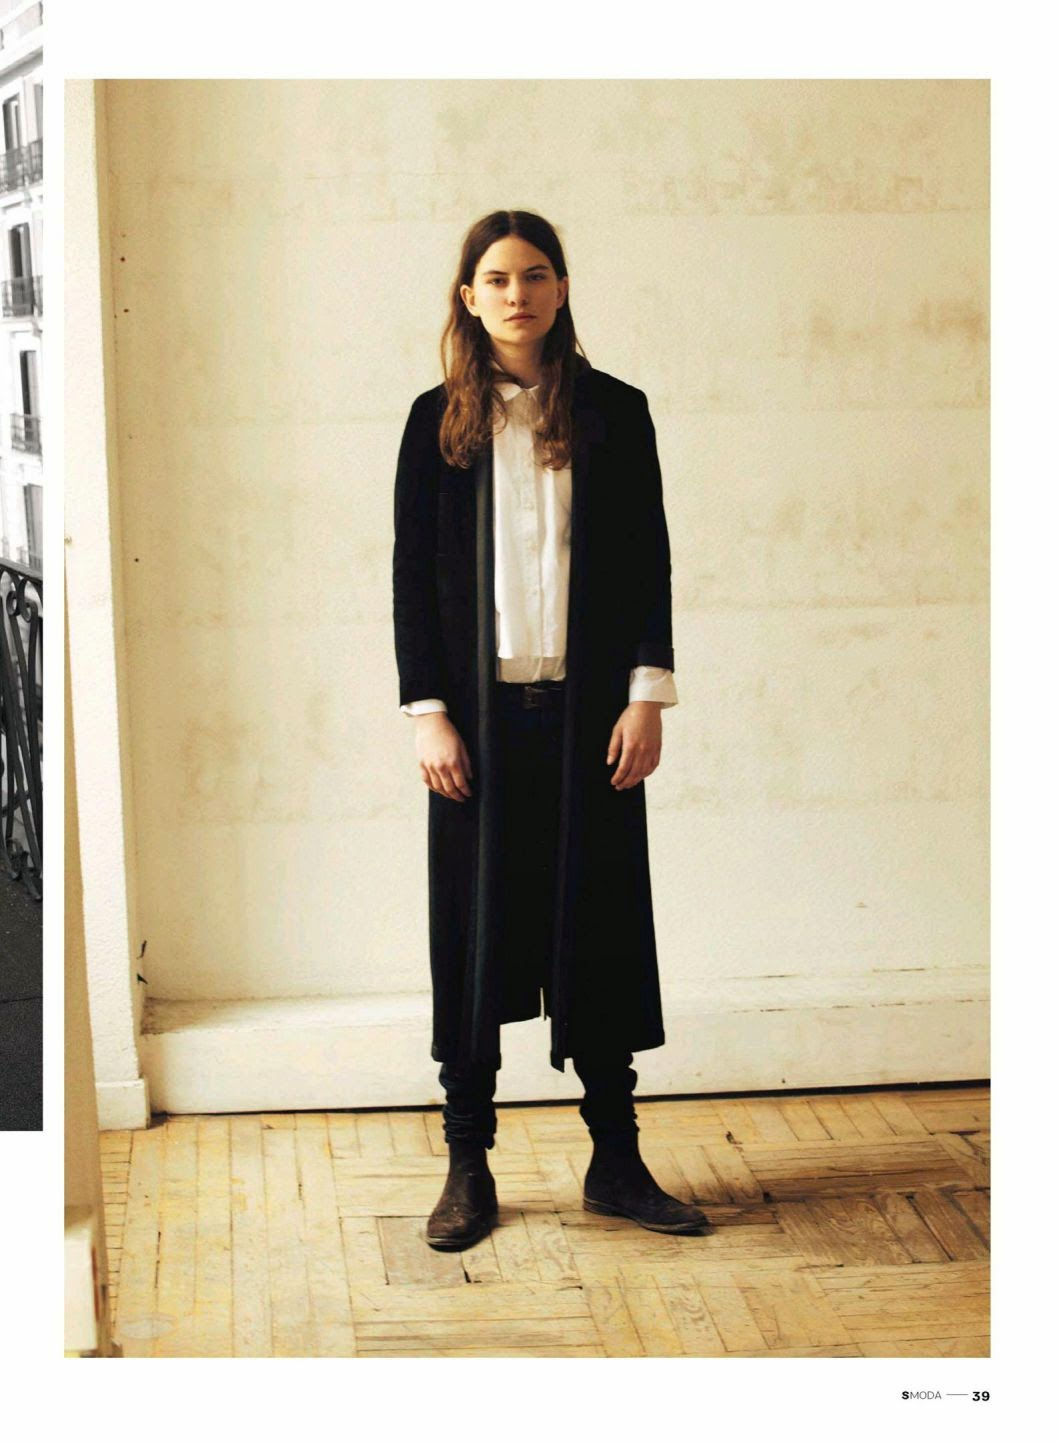 The Charmer Pages : Eliot Sumner For S Moda